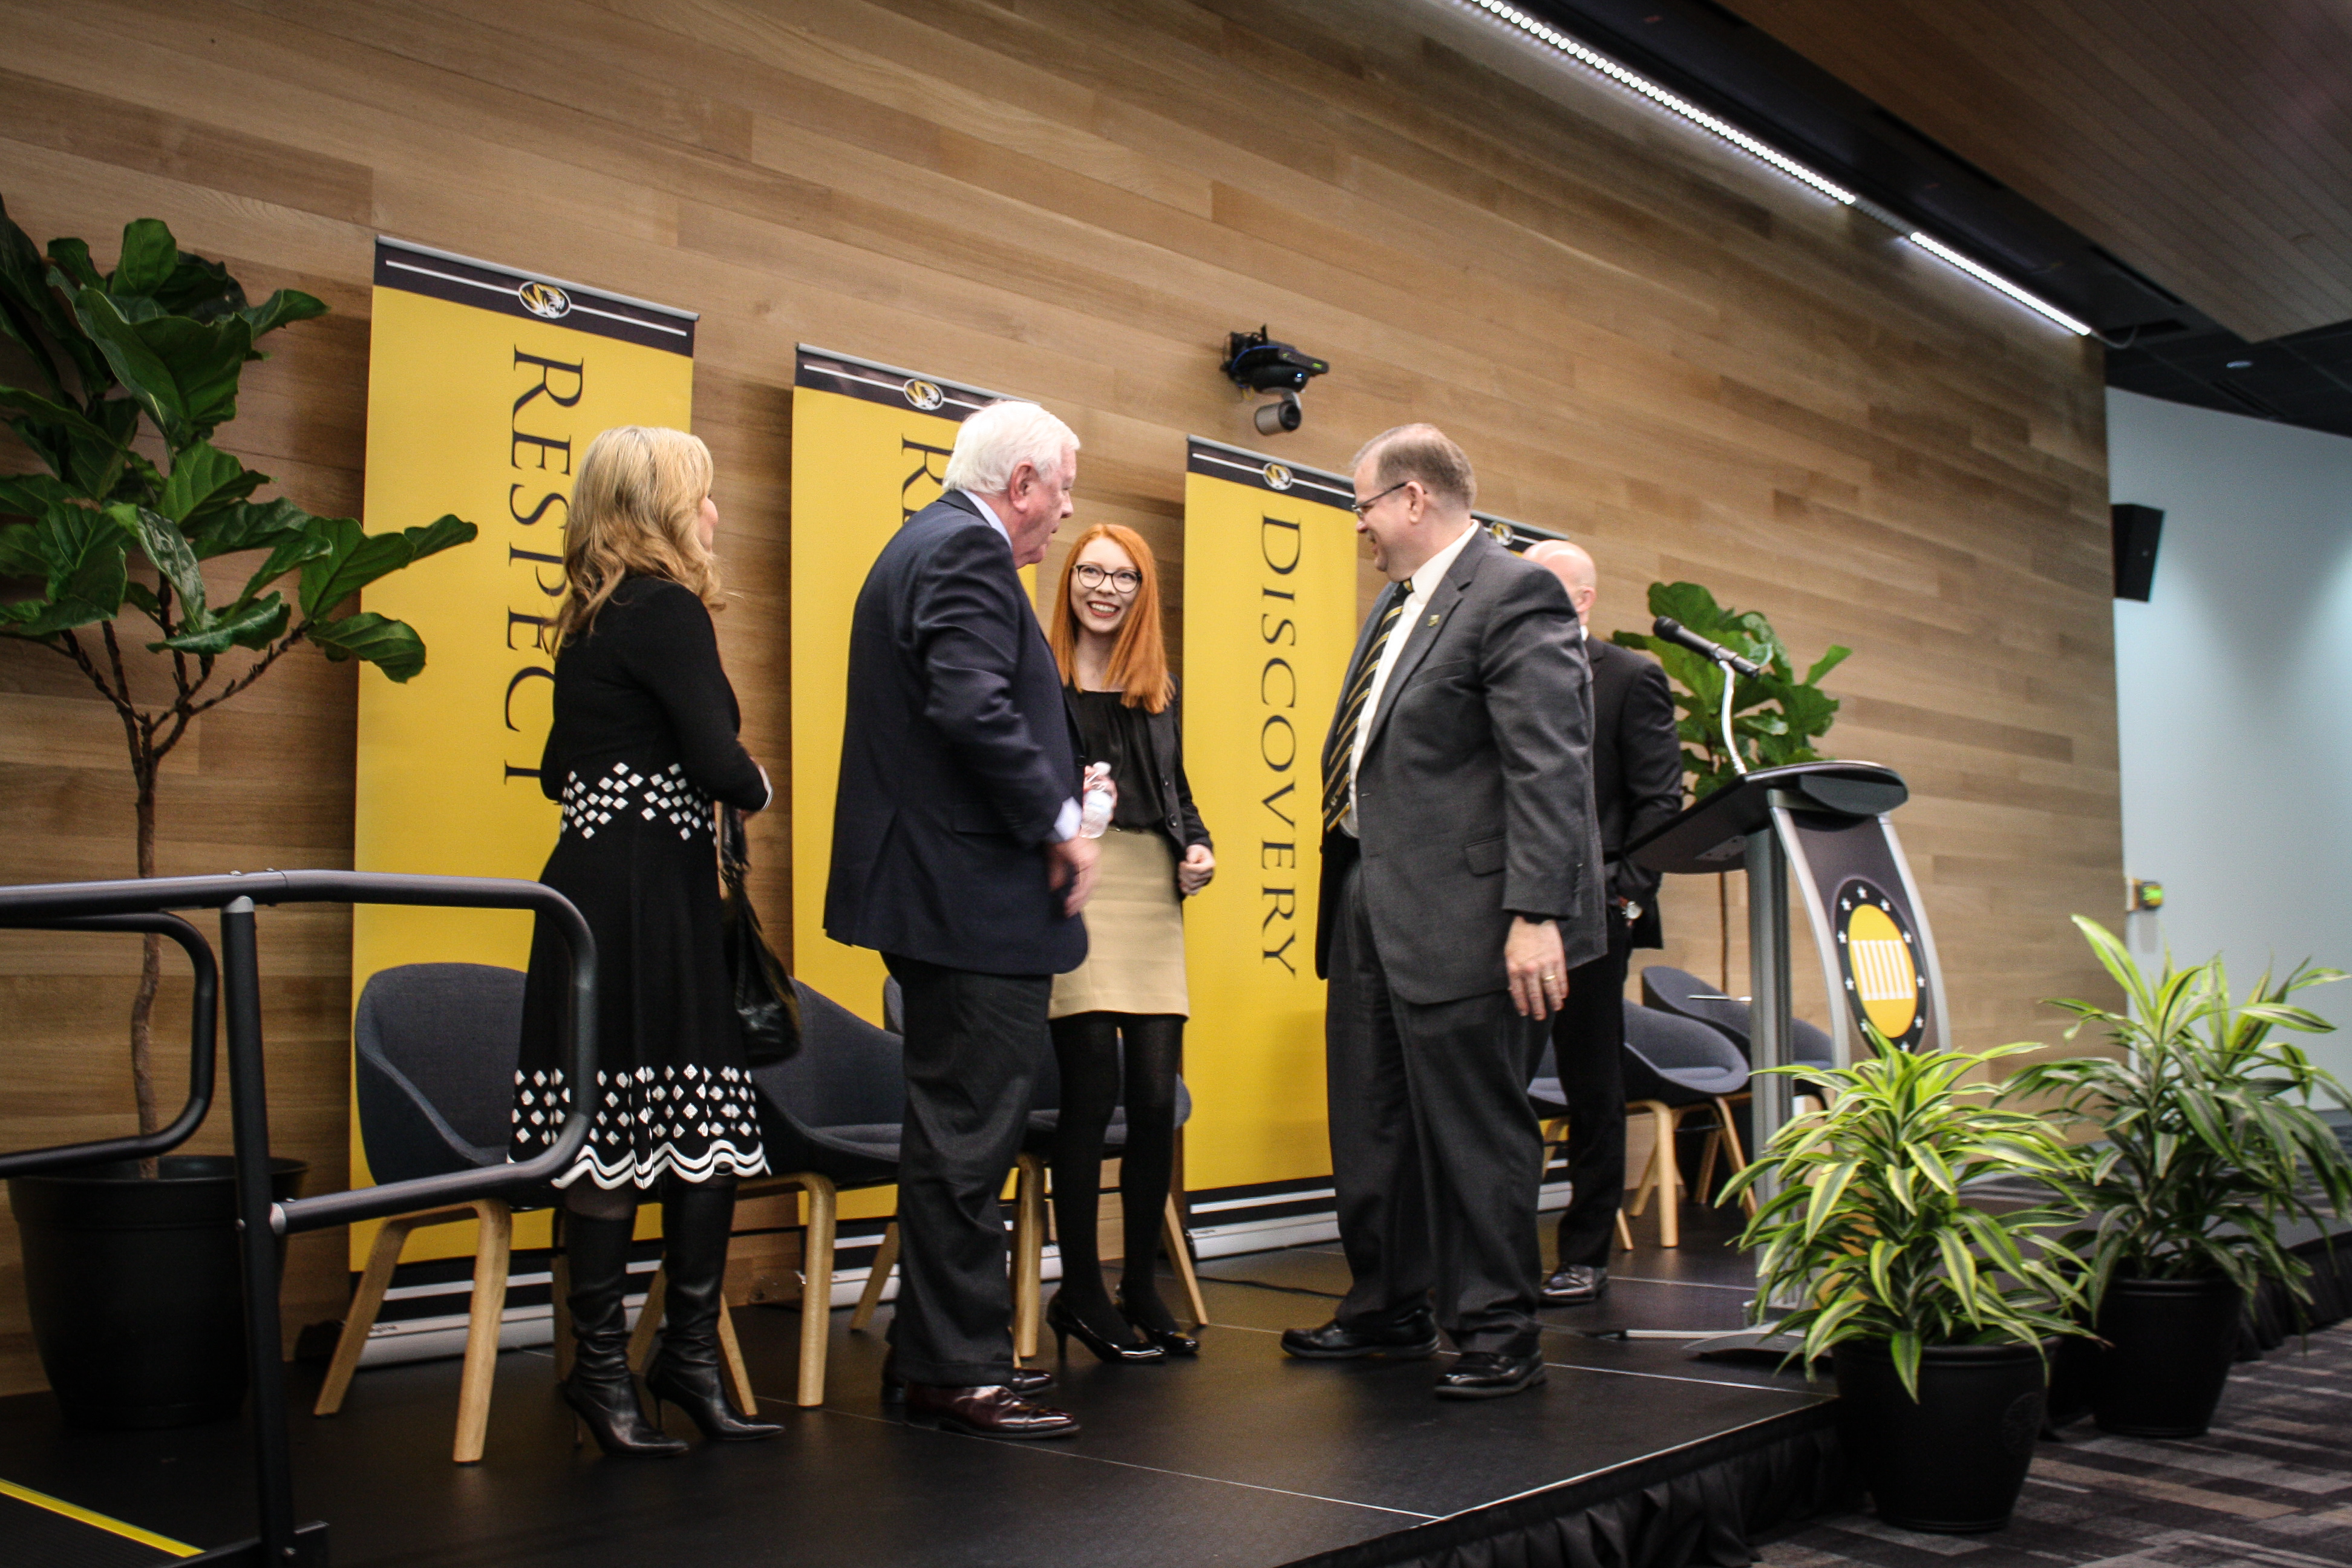 MU senior Riley Messer shared her story about how the Kinder Institute on Constitutional Democracy enhanced her undergraduate career. Messer, a native of Buckner, Missouri shared her story with Nancy and Rich Kinder and Chancellor Alexander Cartwright during the press conference announcing the $10 million gift from the Kinder Foundation.